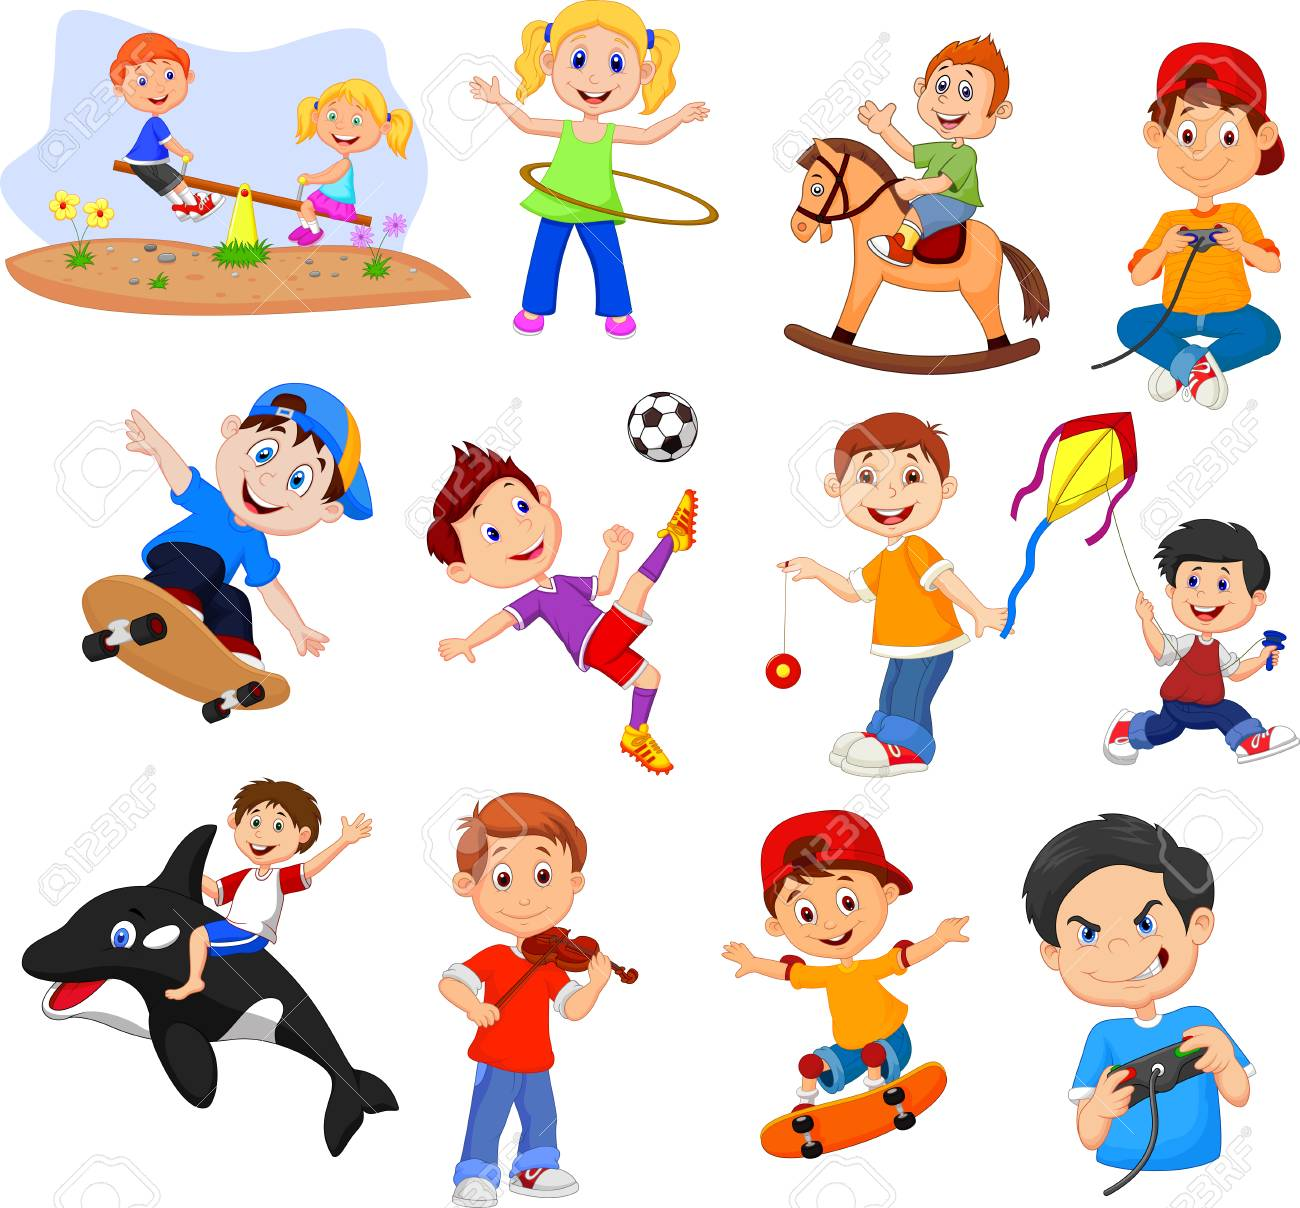 Cartoon Kids With Different Hobbies Collection Set Royalty Free Cliparts Vectors And Stock Illustration Image 111519206